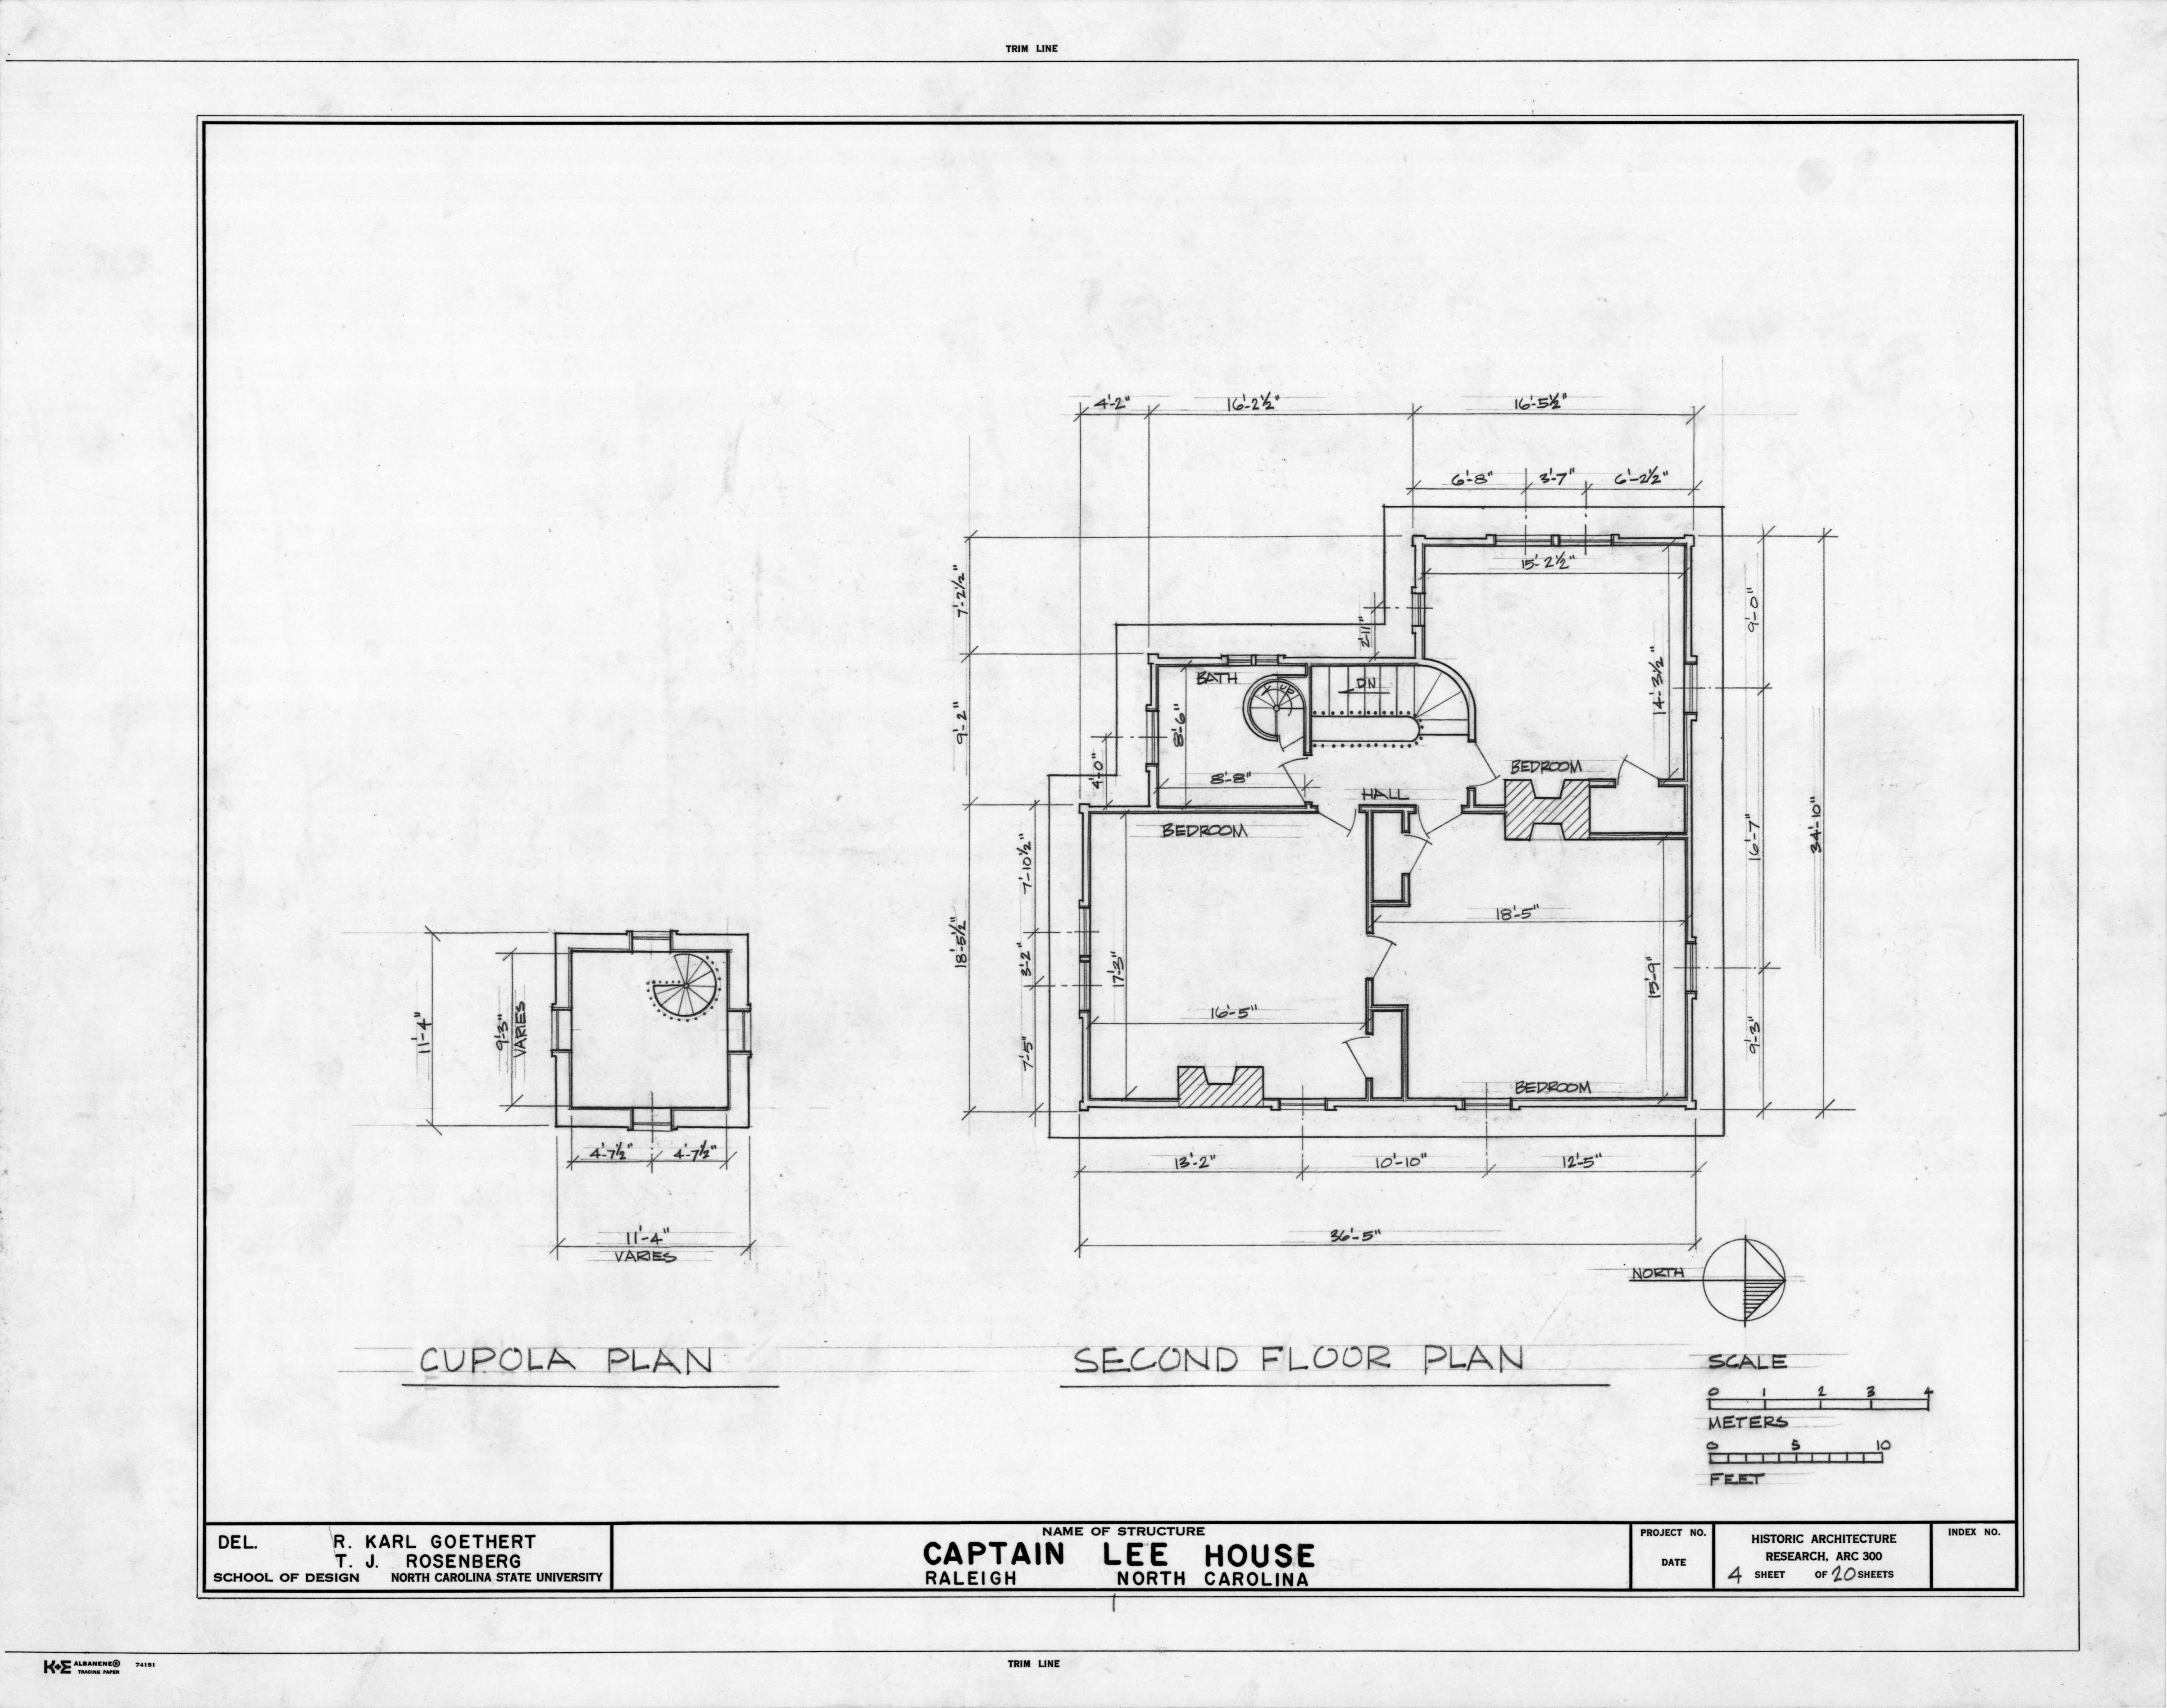 Cupola And Second Floor Plans Heck Lee House Raleigh